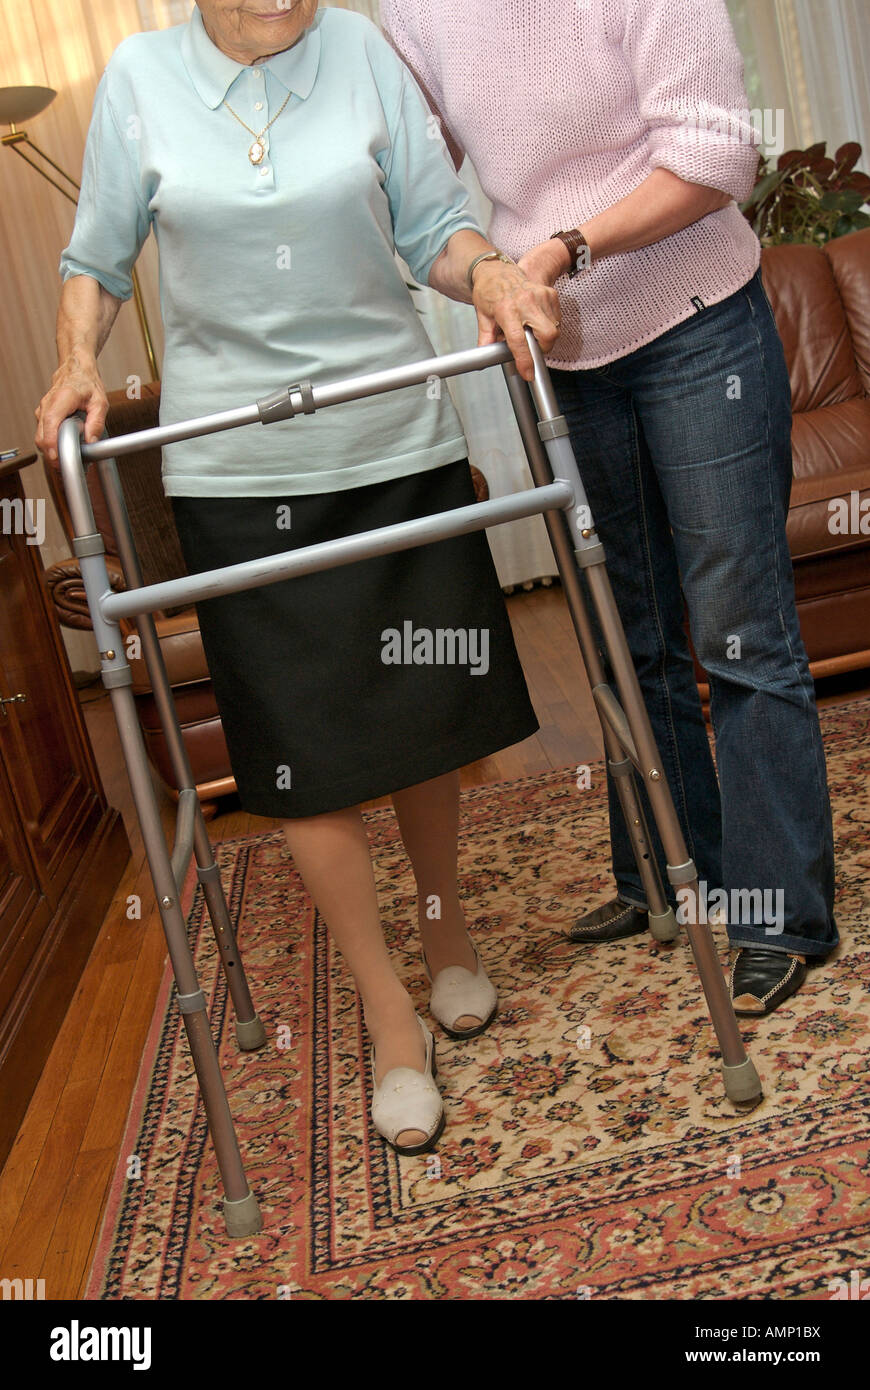 Elderly lady walking with her zimmer frame being helped by a nurse / carer - Stock Image